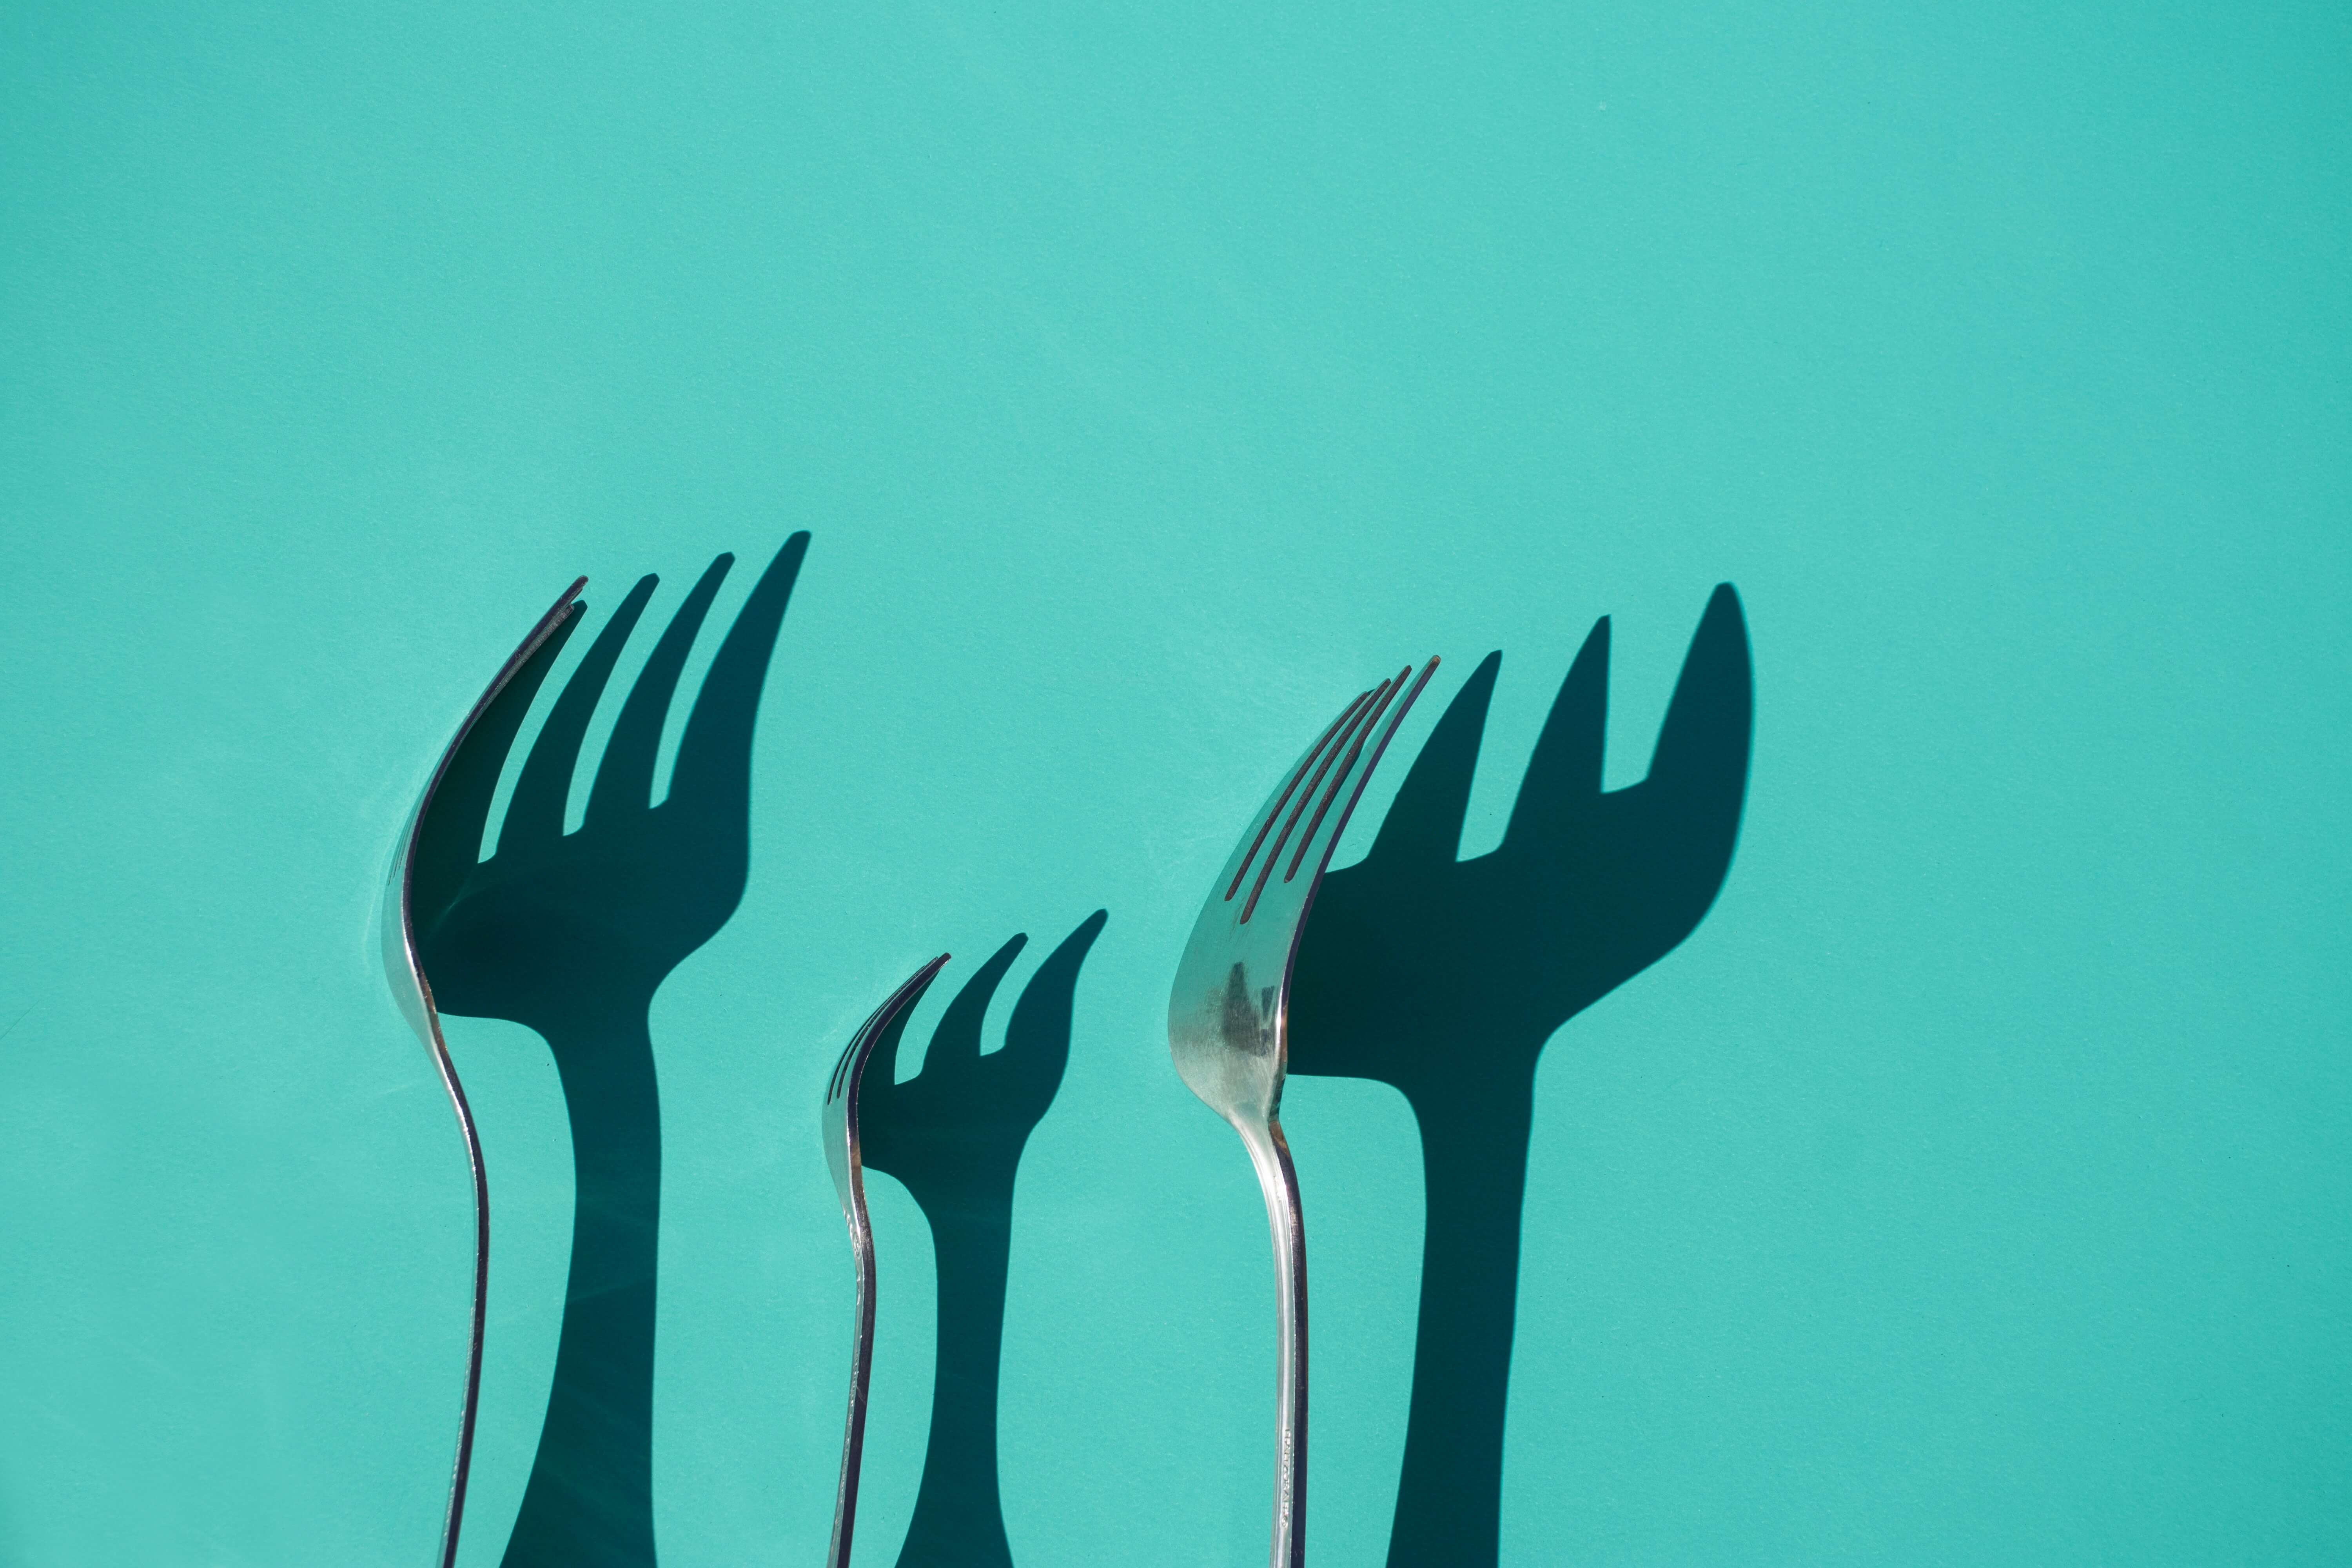 Three forks and their shadows falling on a green background